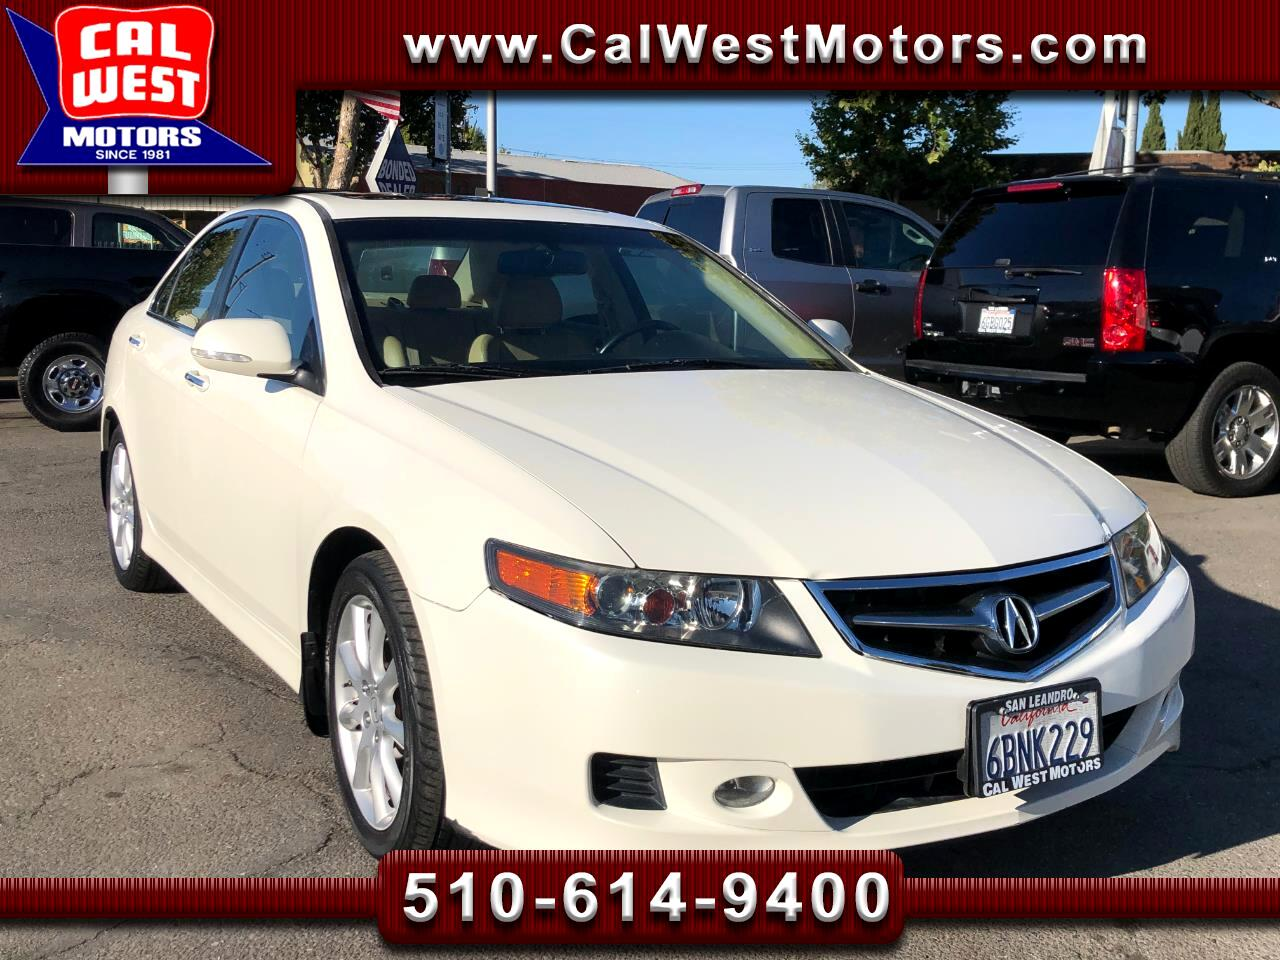 2008 Acura TSX Sedan 4Dr i-VTEC CD Blu2th MoonRoof ExprtlyMaintnd